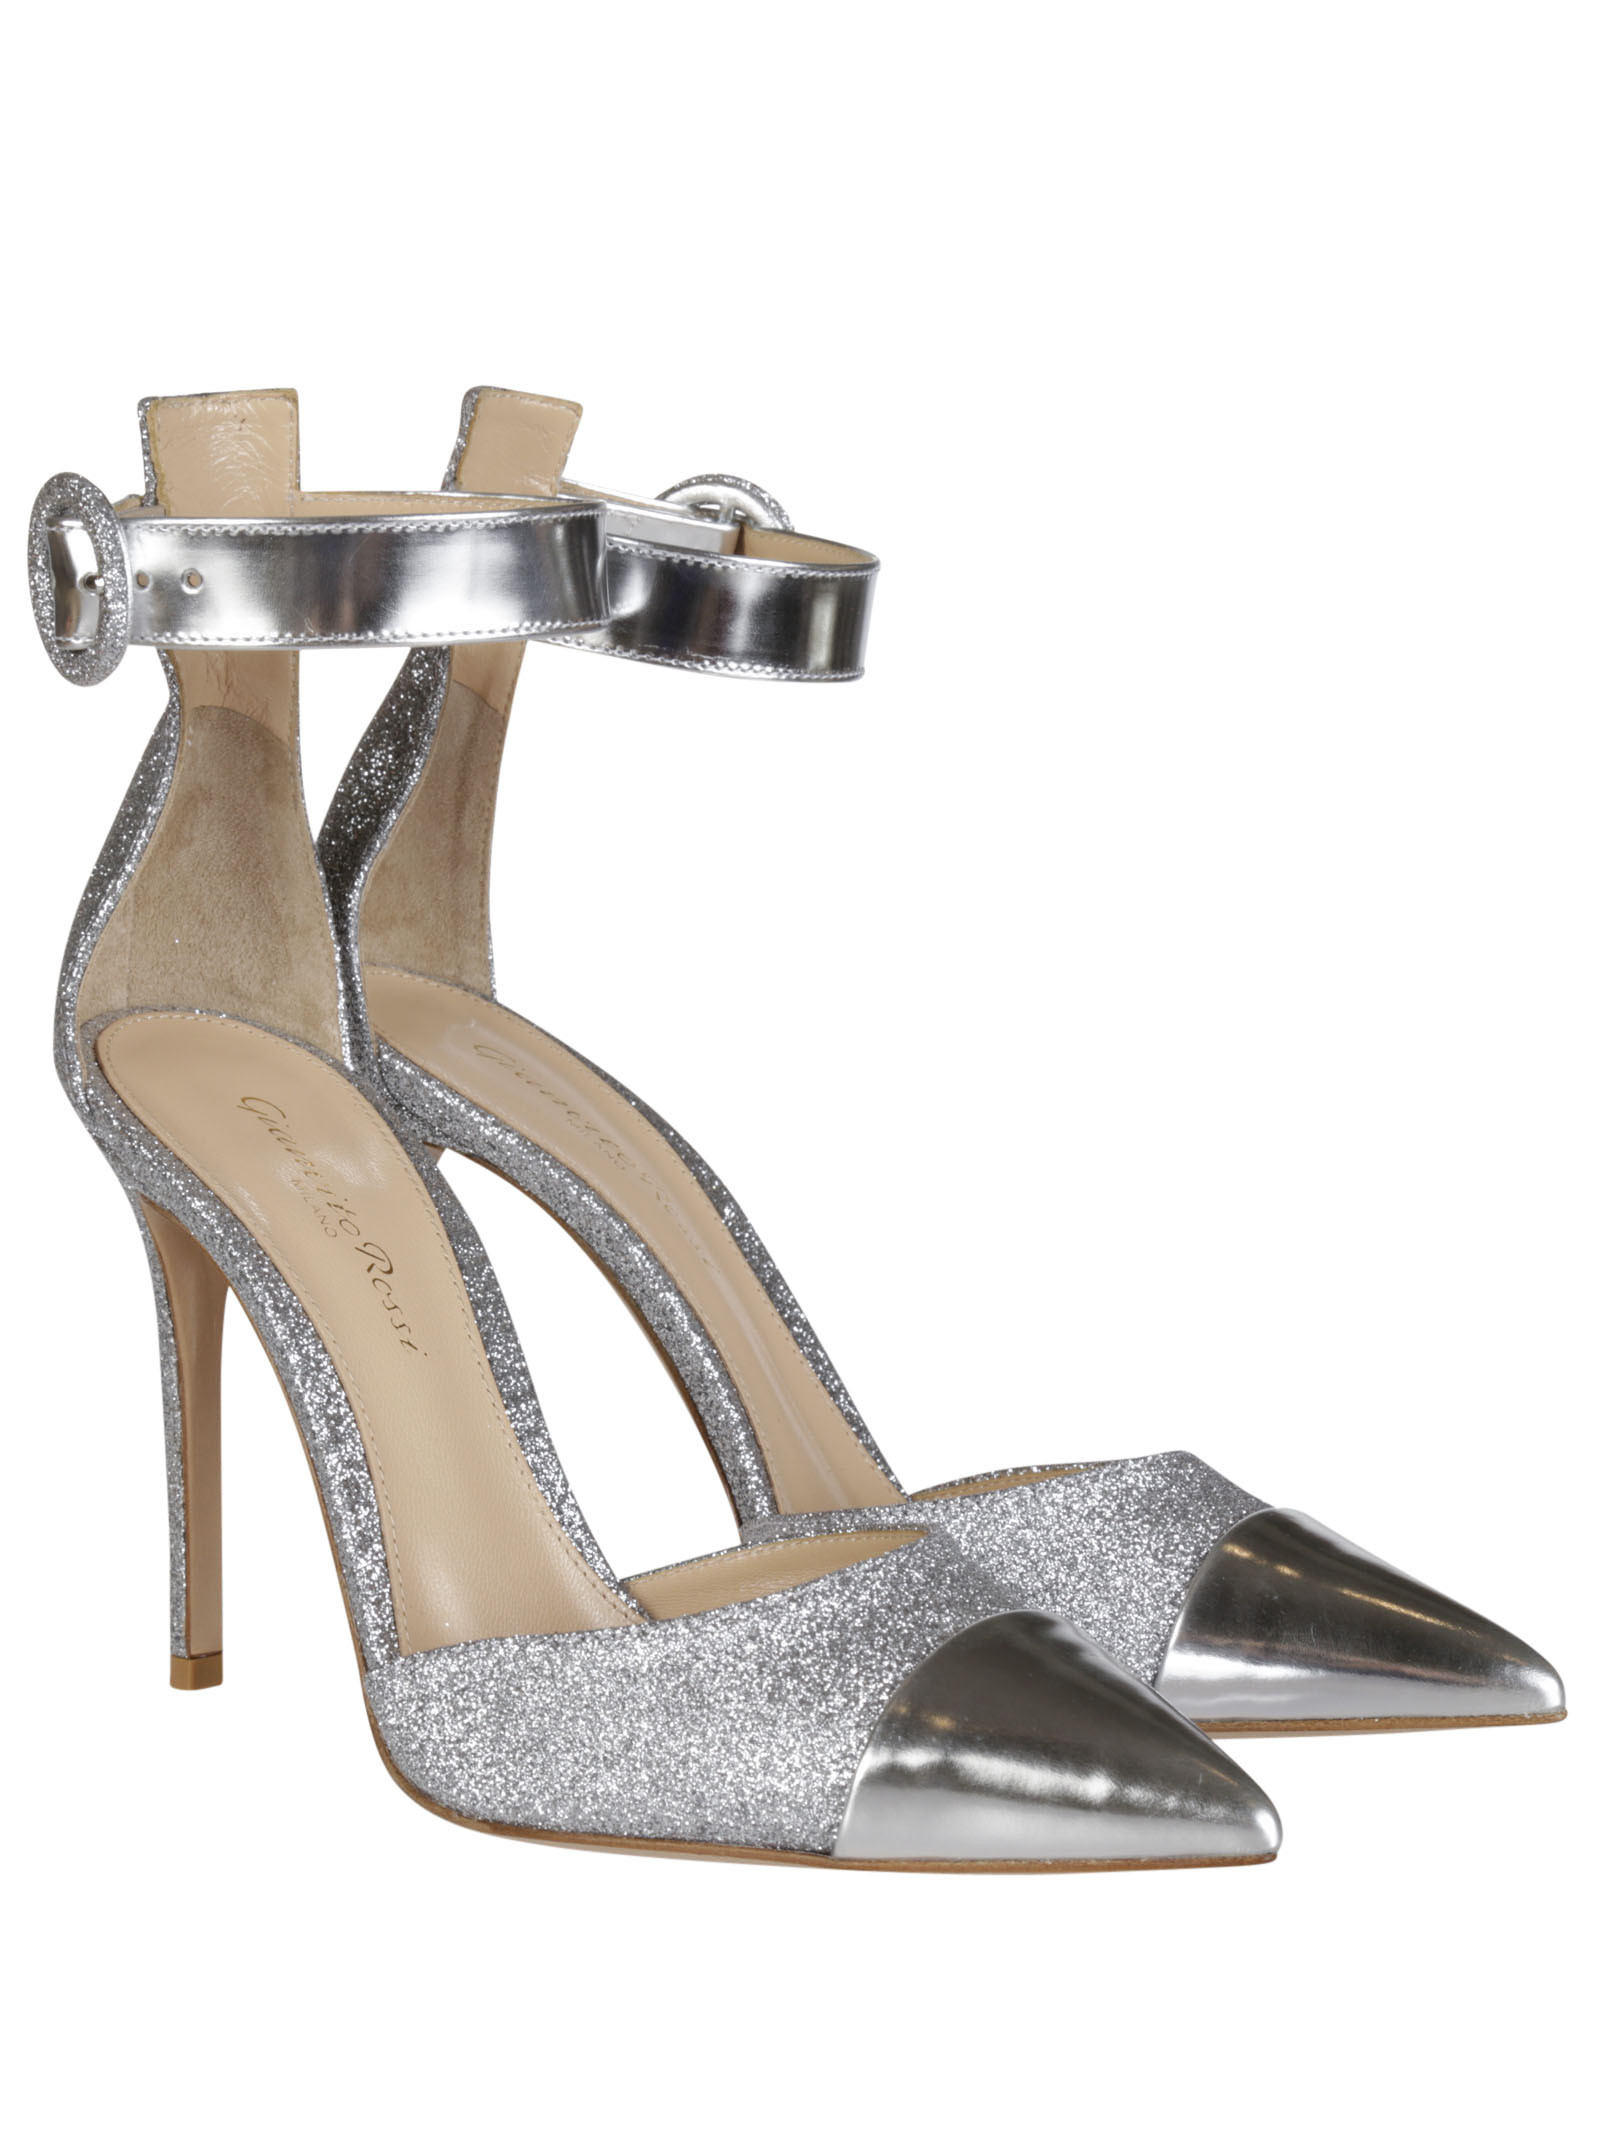 Gianvito Rossi Lillie Glitters Sandals - Gianvito Rossi - Bag & Shoes